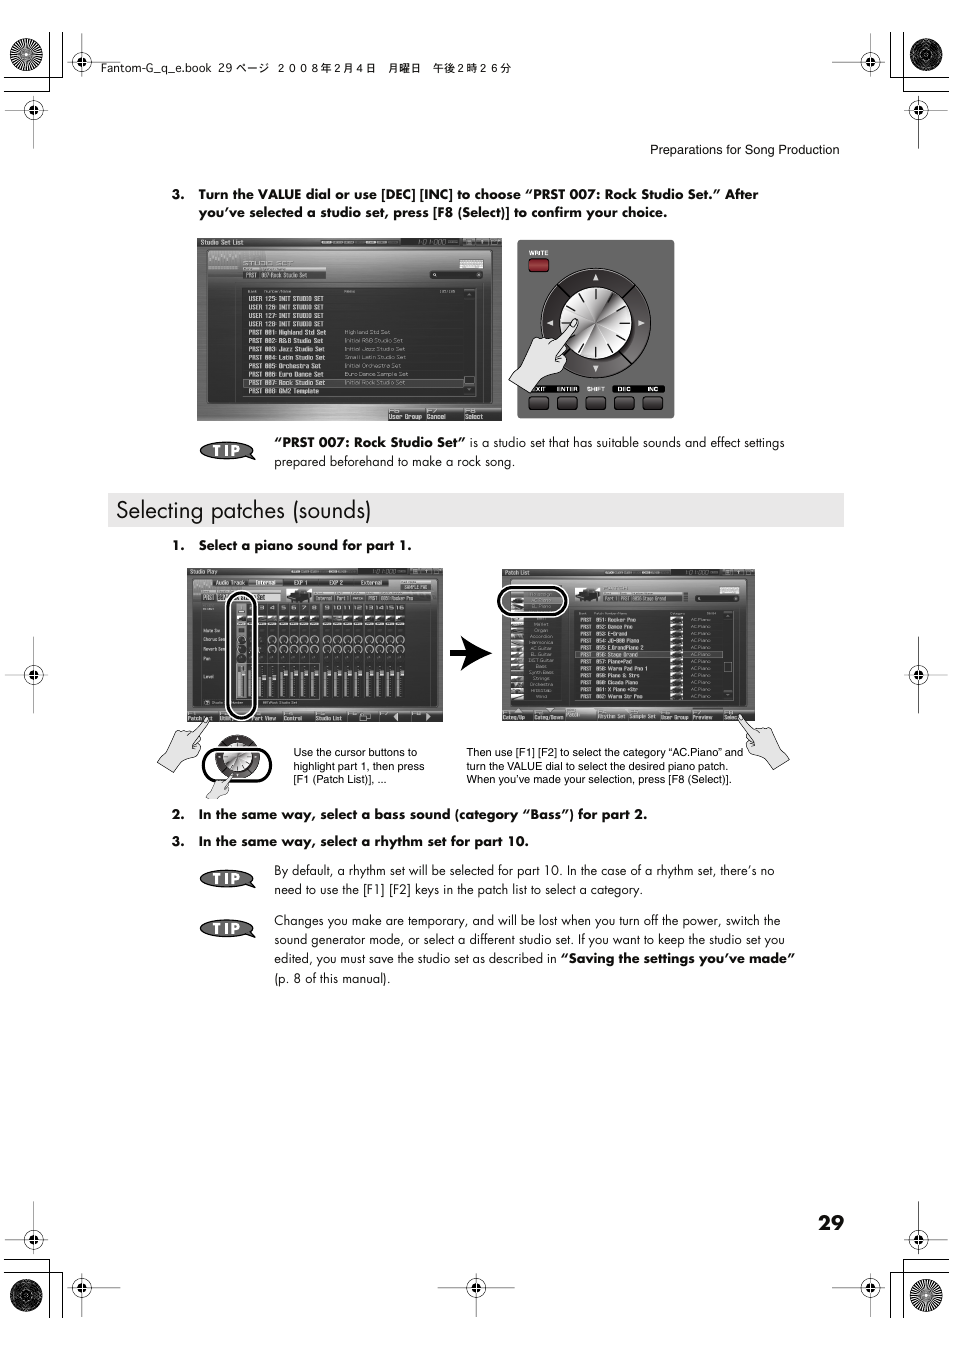 Selecting patches (sounds)   Roland Fantom G8 User Manual